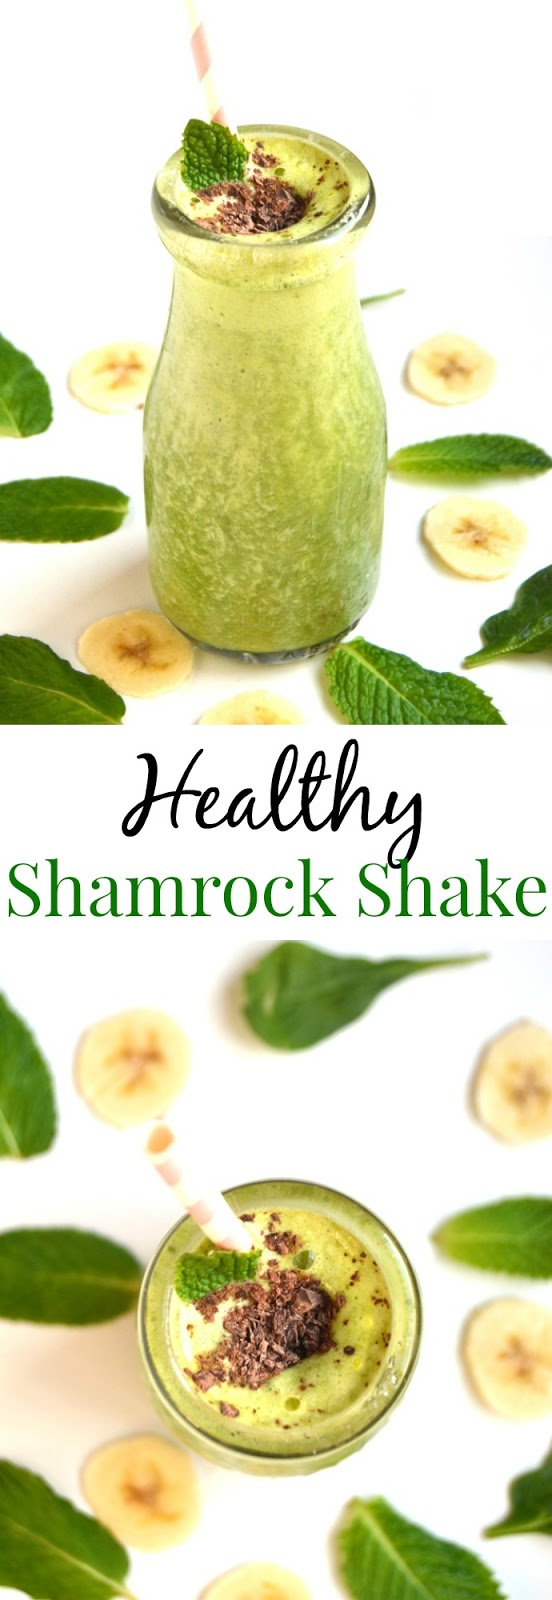 Healthy Shamrock Shake is a lighter take on your favorite St. Patrick's Day shake that takes 5 minutes to make and is perfect for dessert, a snack or breakfast. www.nutritinistreviews.com